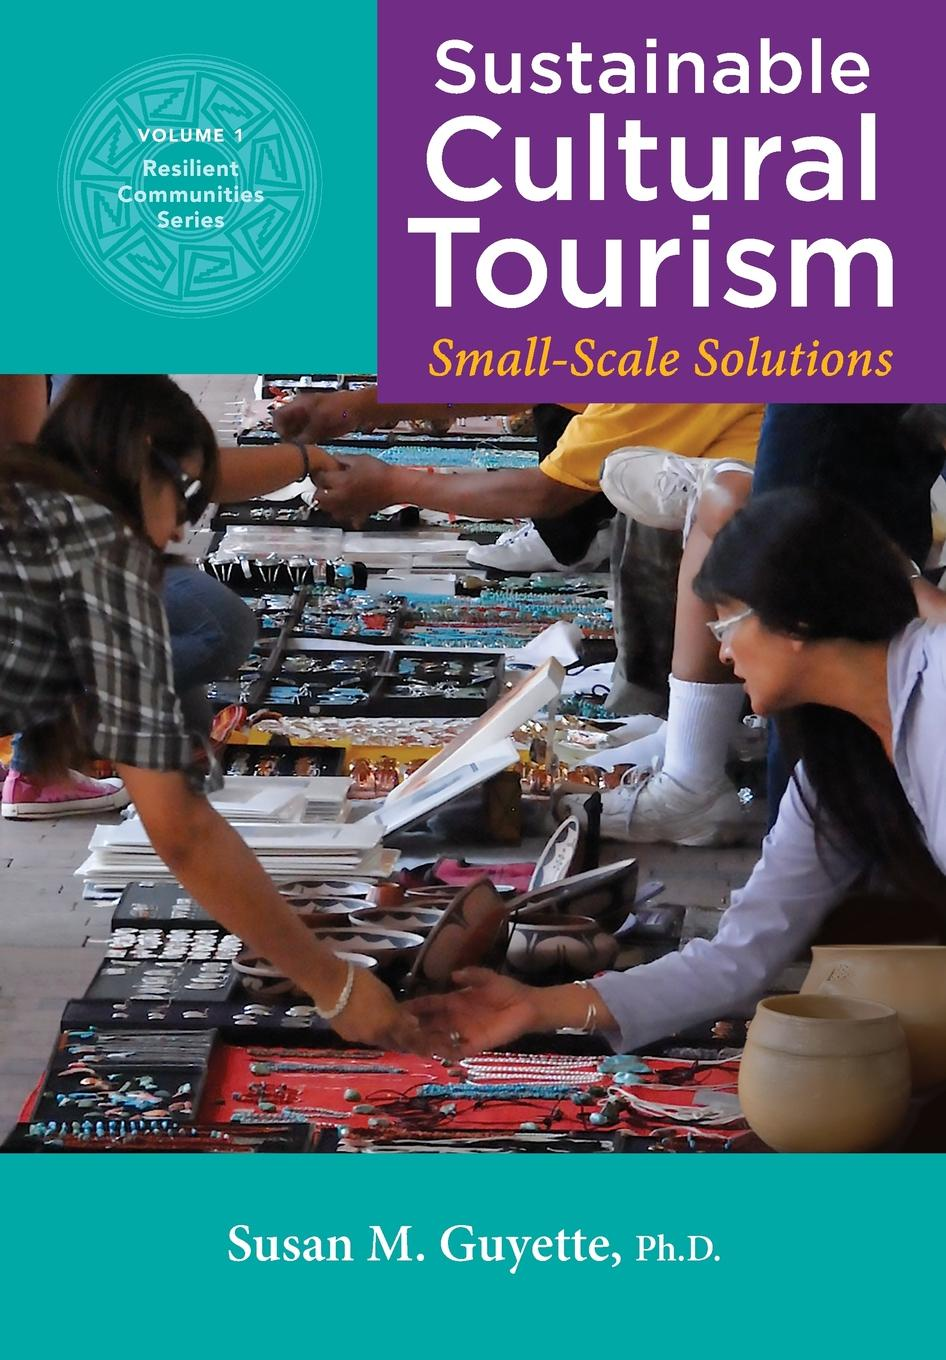 Susan M. Guyette Ph.D. Sustainable Cultural Tourism. Small-Scale Solutions